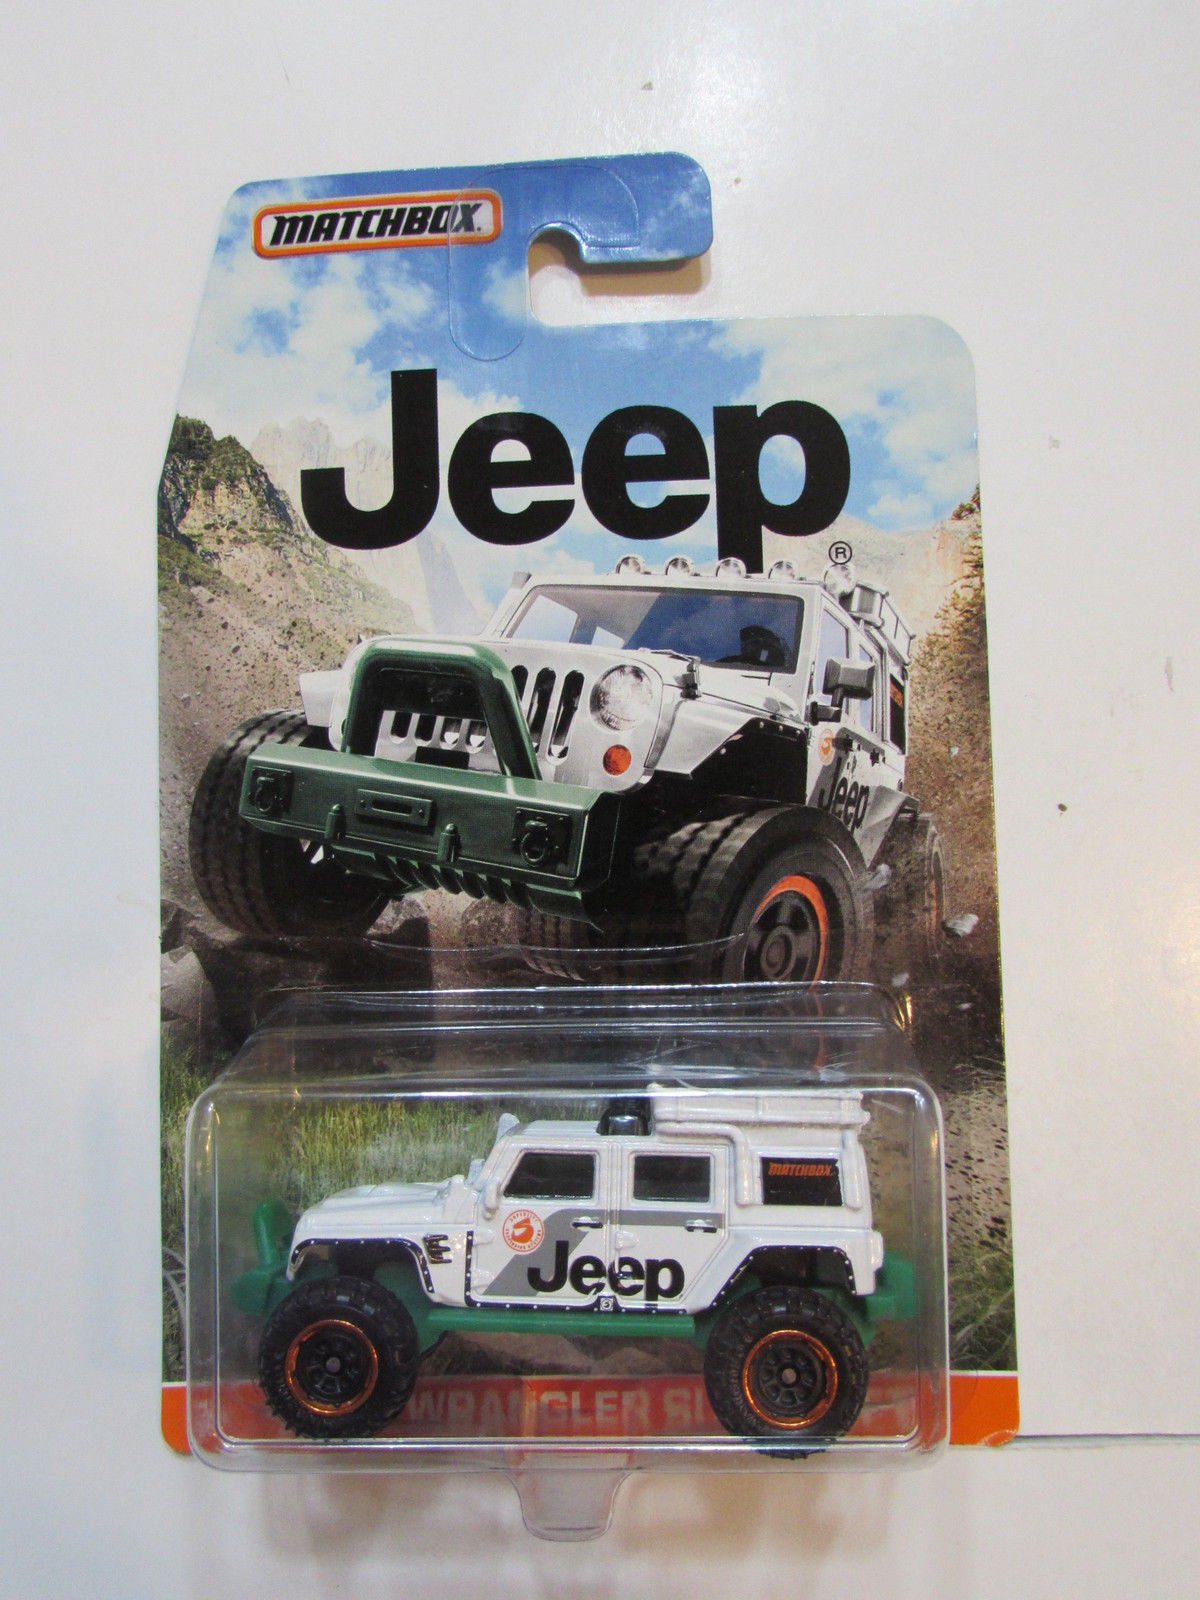 MATCHBOX 2015 JEEP WRANGLER SUPERLIFT WHITE